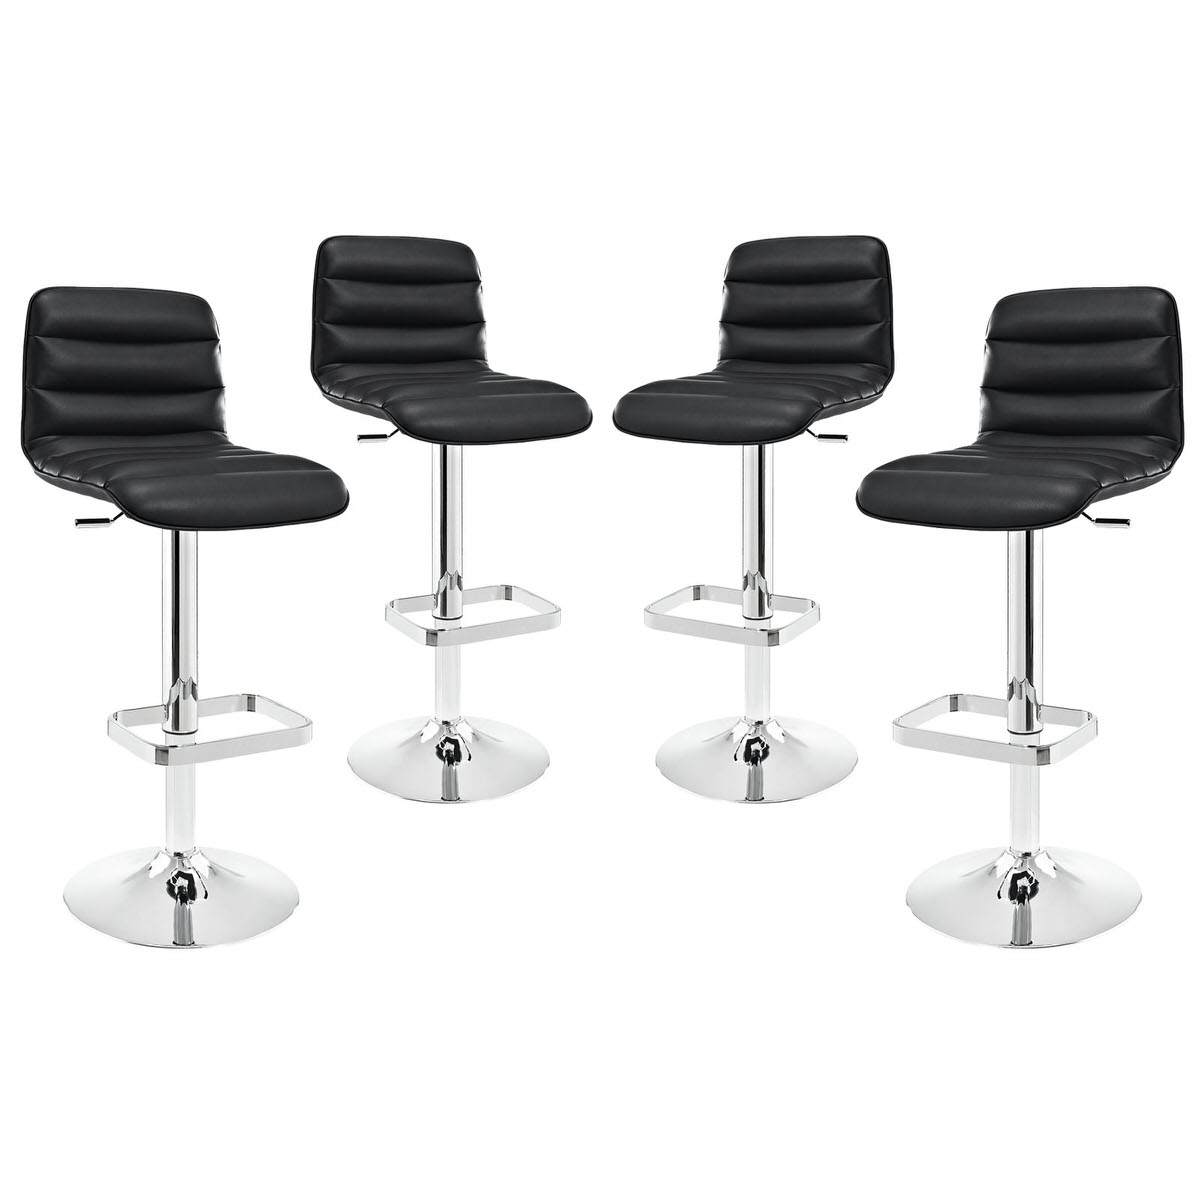 Outstanding Ripple Bar Stool Set Of 4 Black By Modern Living Cjindustries Chair Design For Home Cjindustriesco